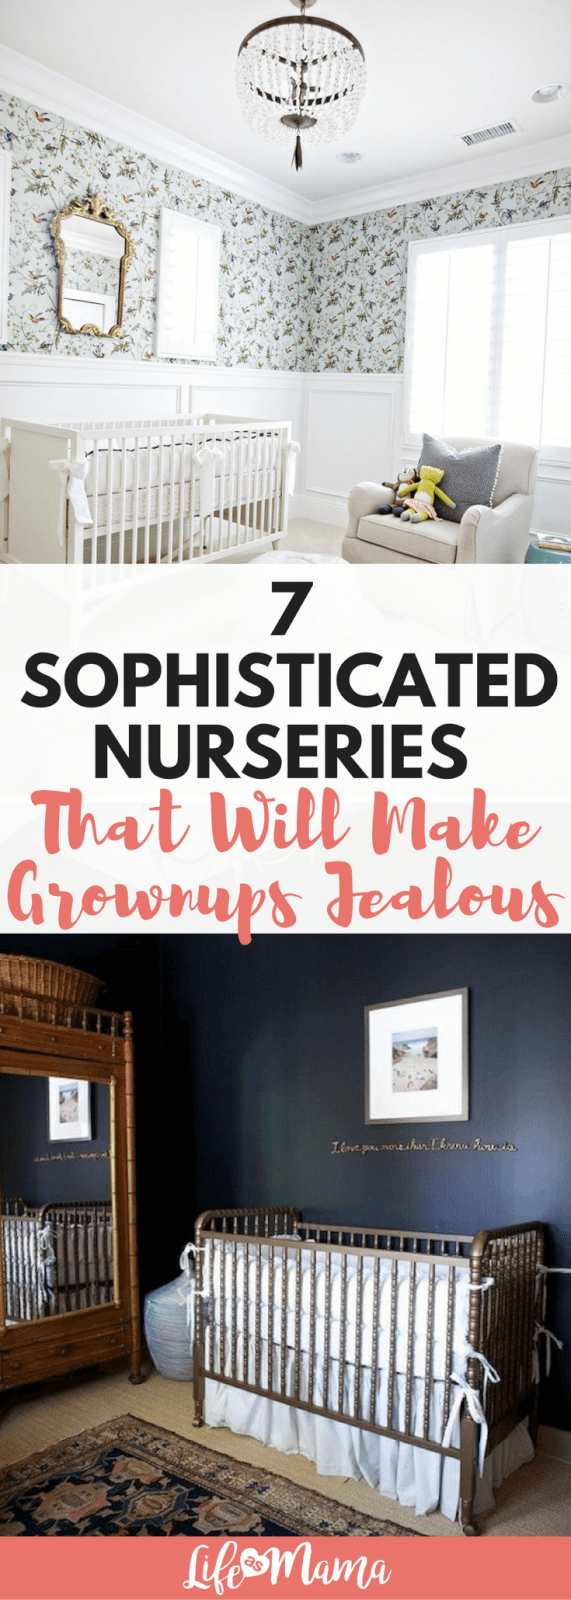 sophisticated nurseries